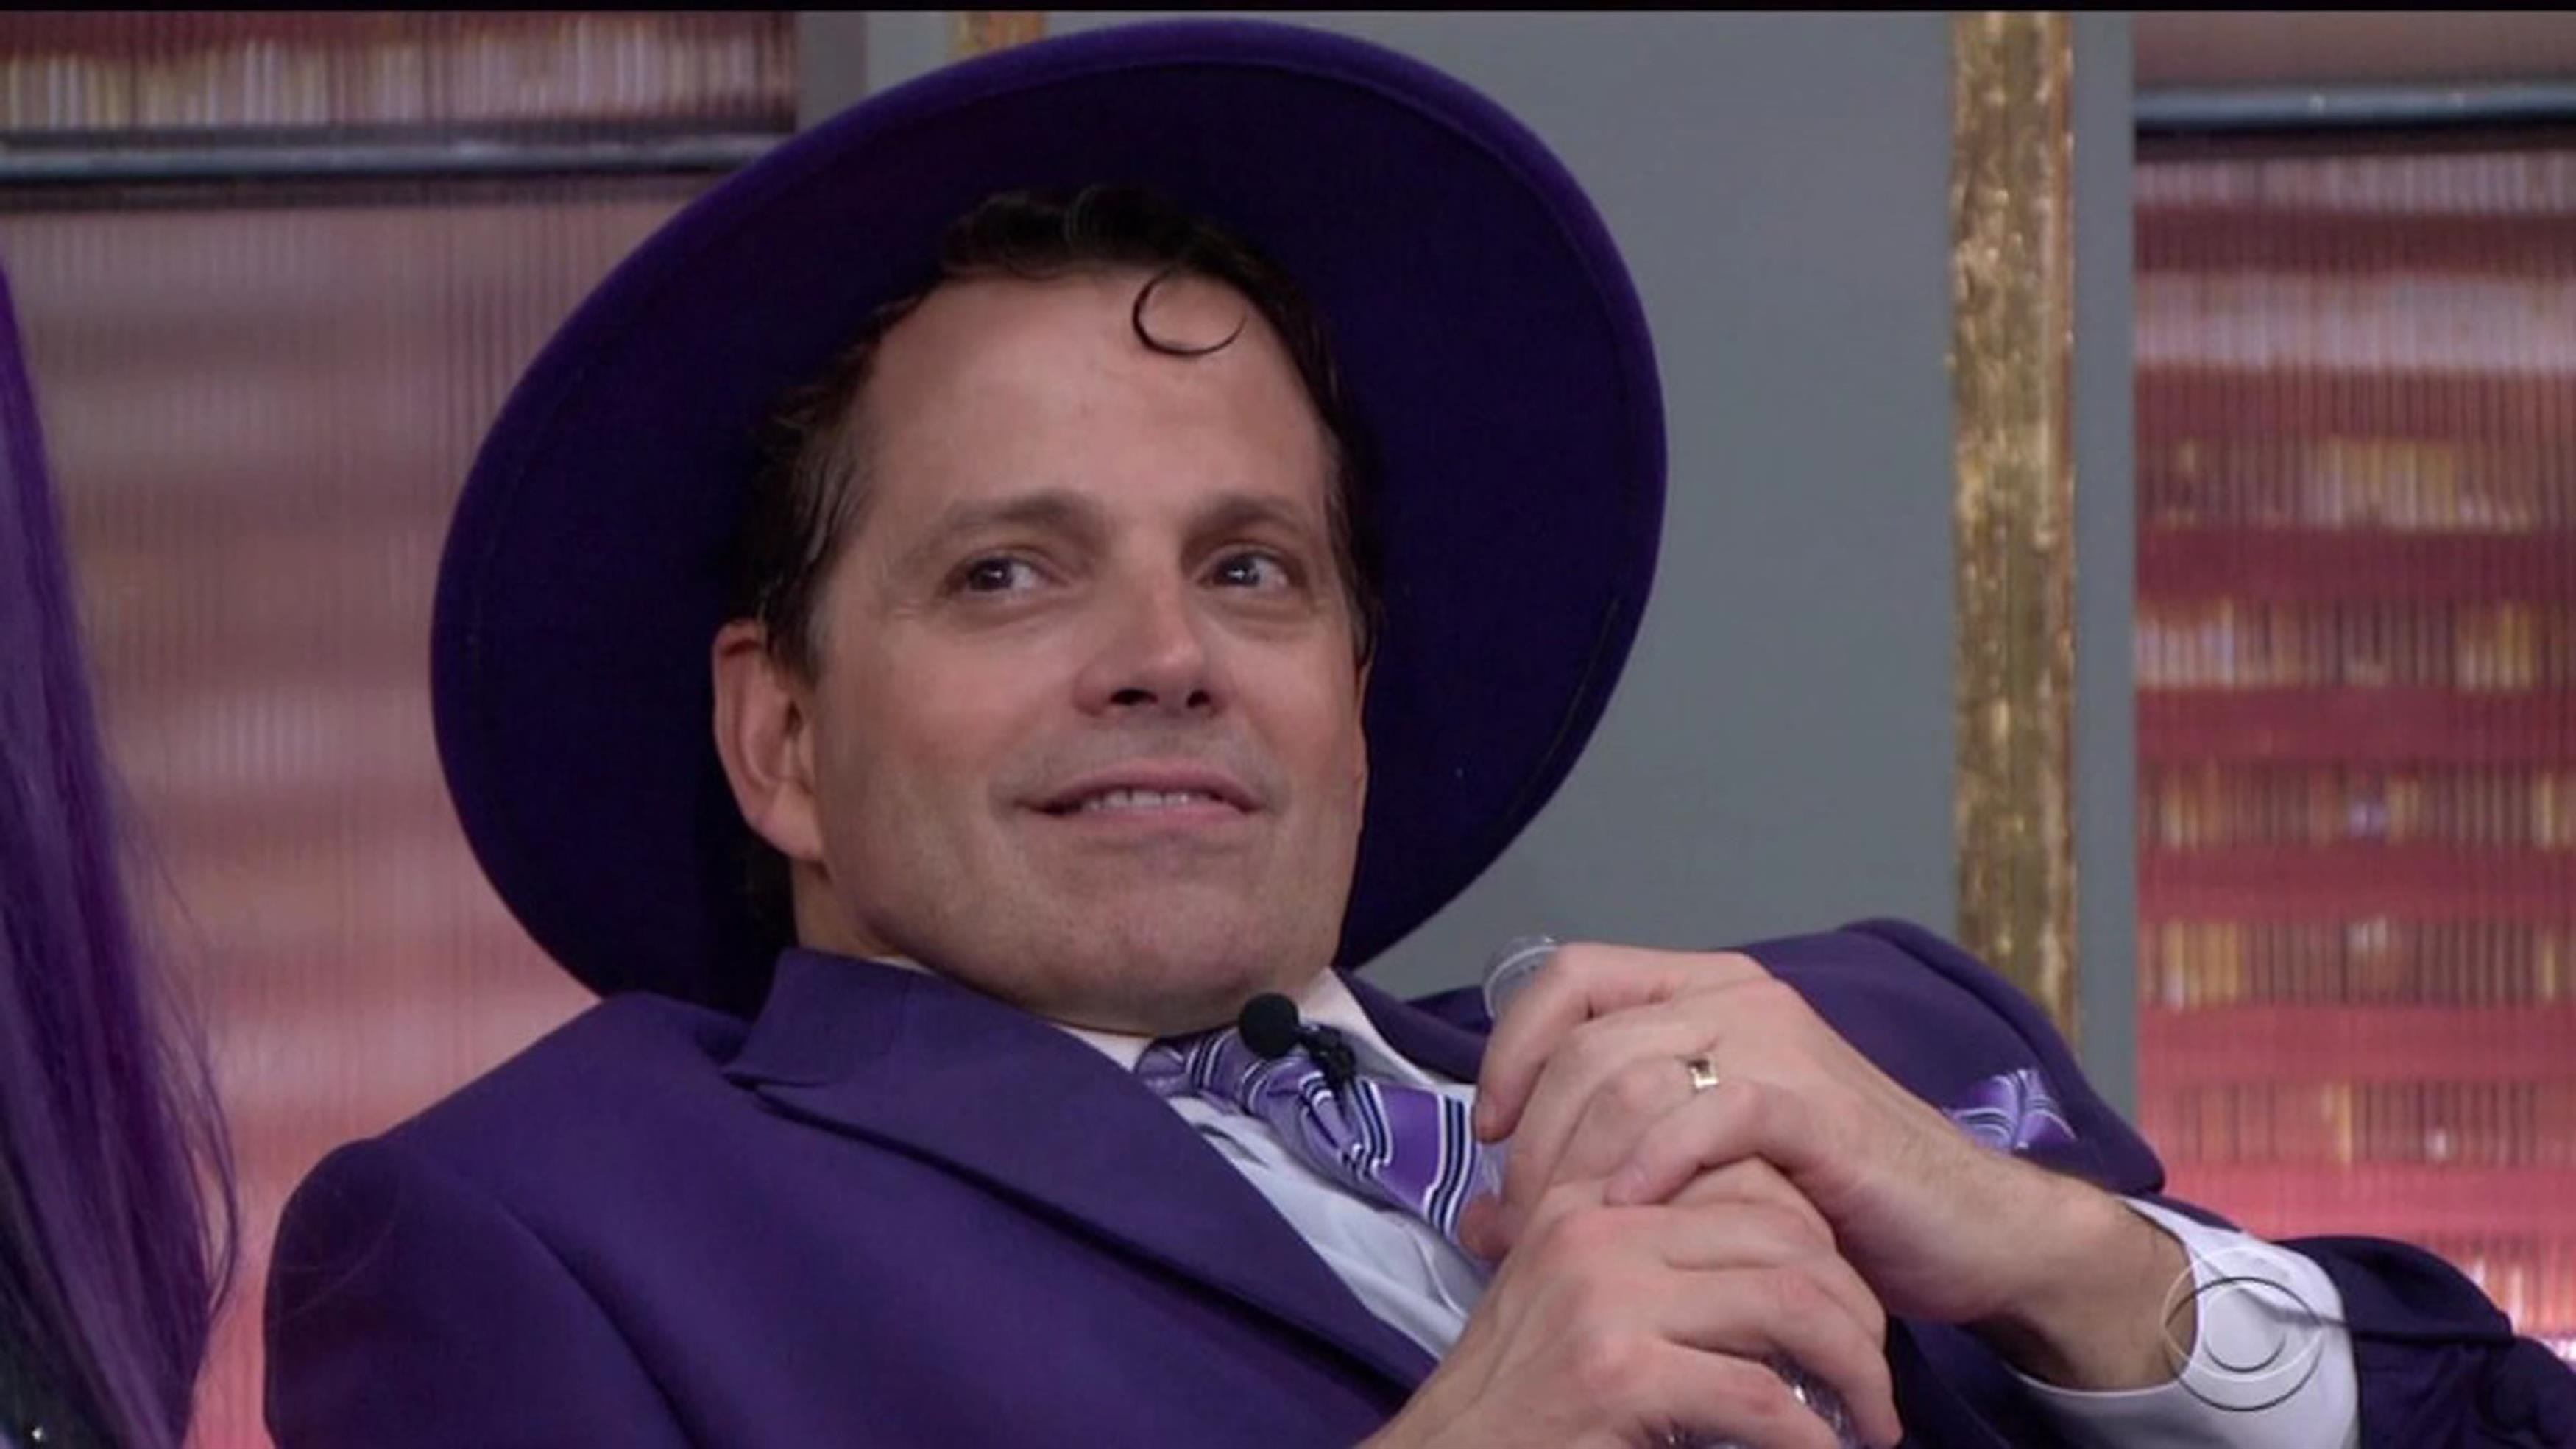 Anthony Scaramucci has left Celebrity Big Brother and no one knows how or why